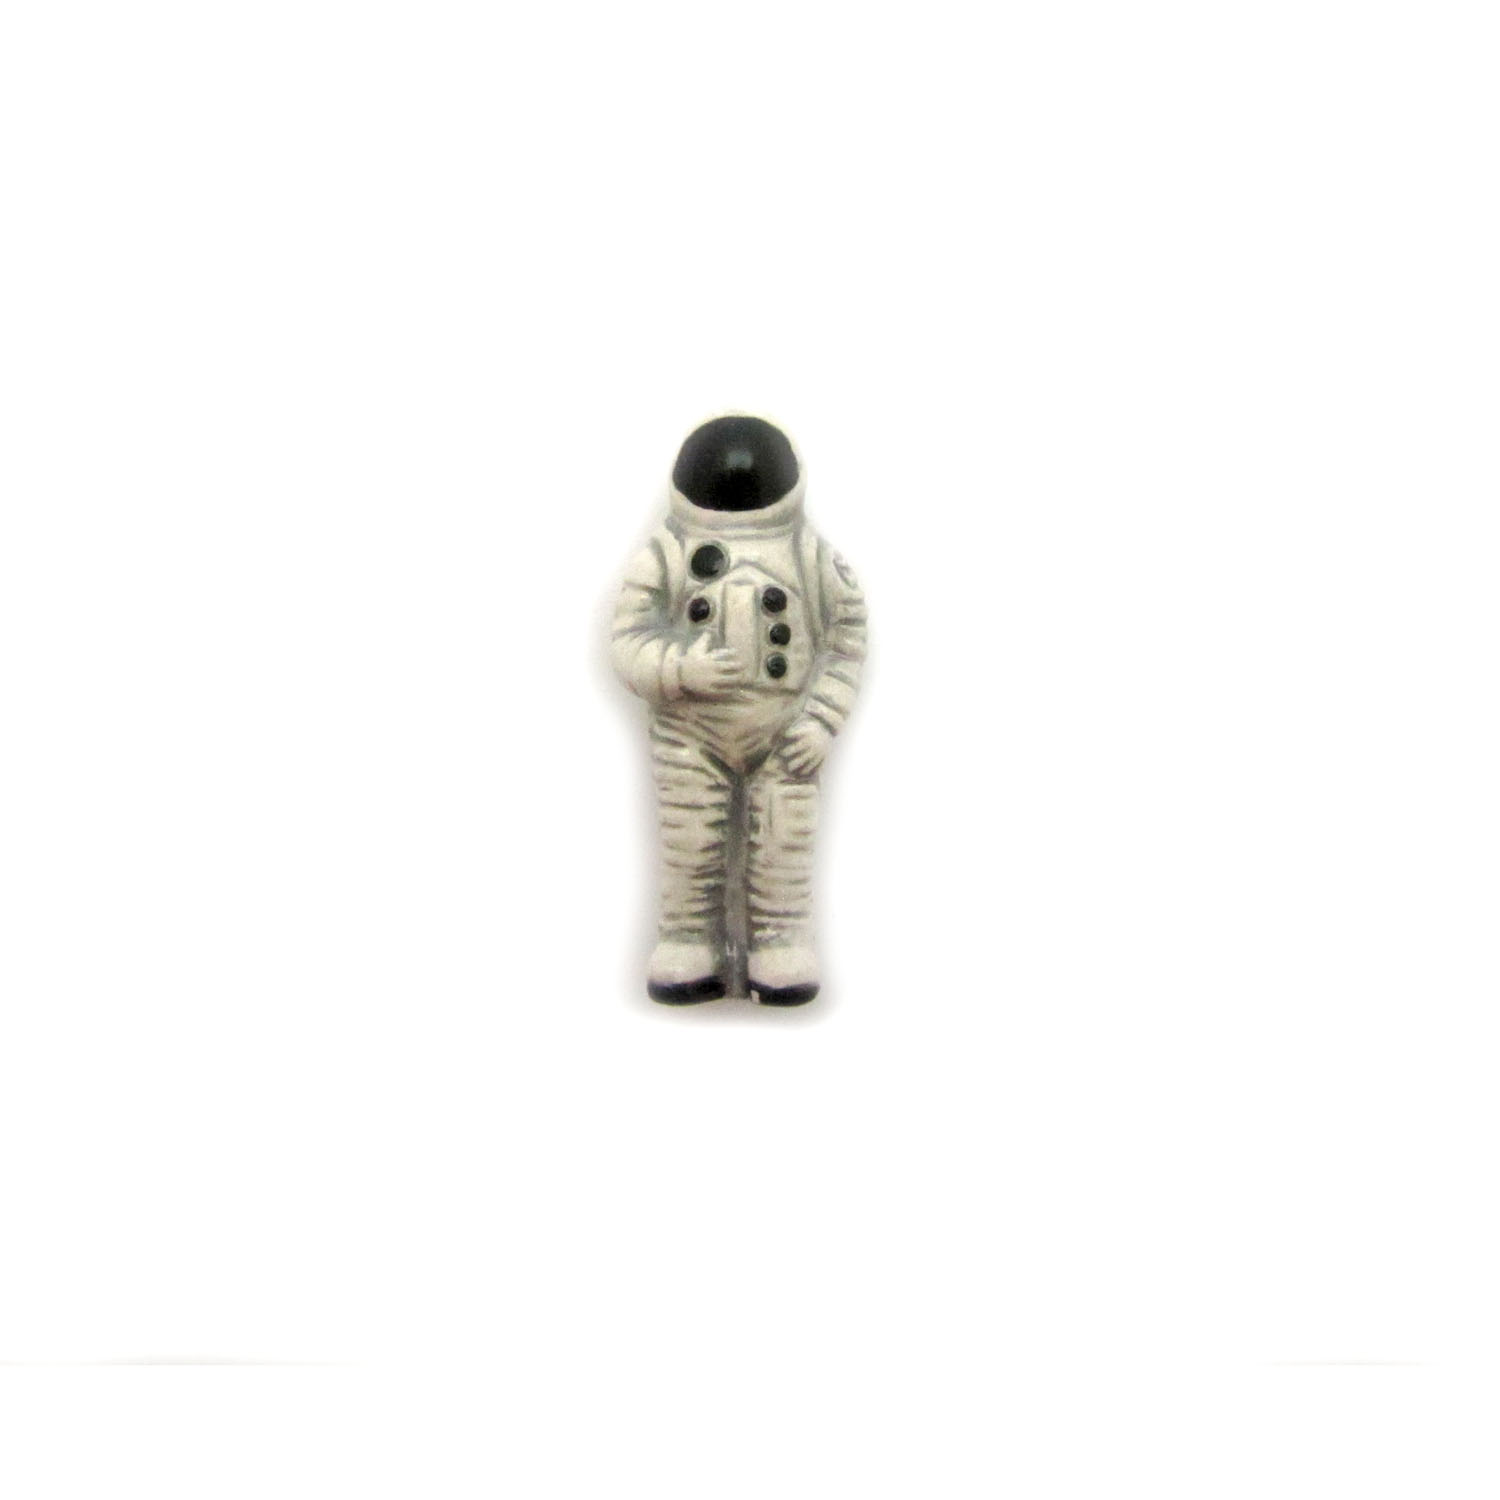 Astronaut ceramic beads large and small